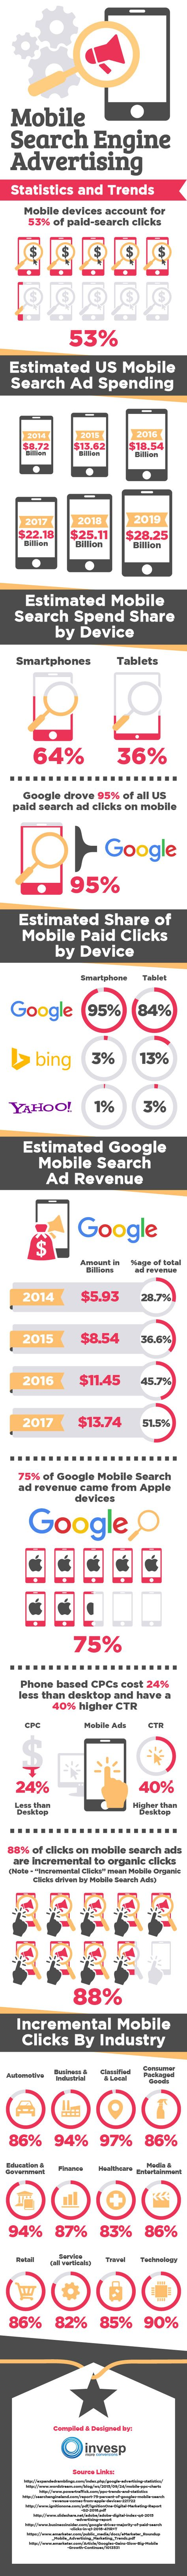 Mobile Advertising Statistics & Trends [Infographic]